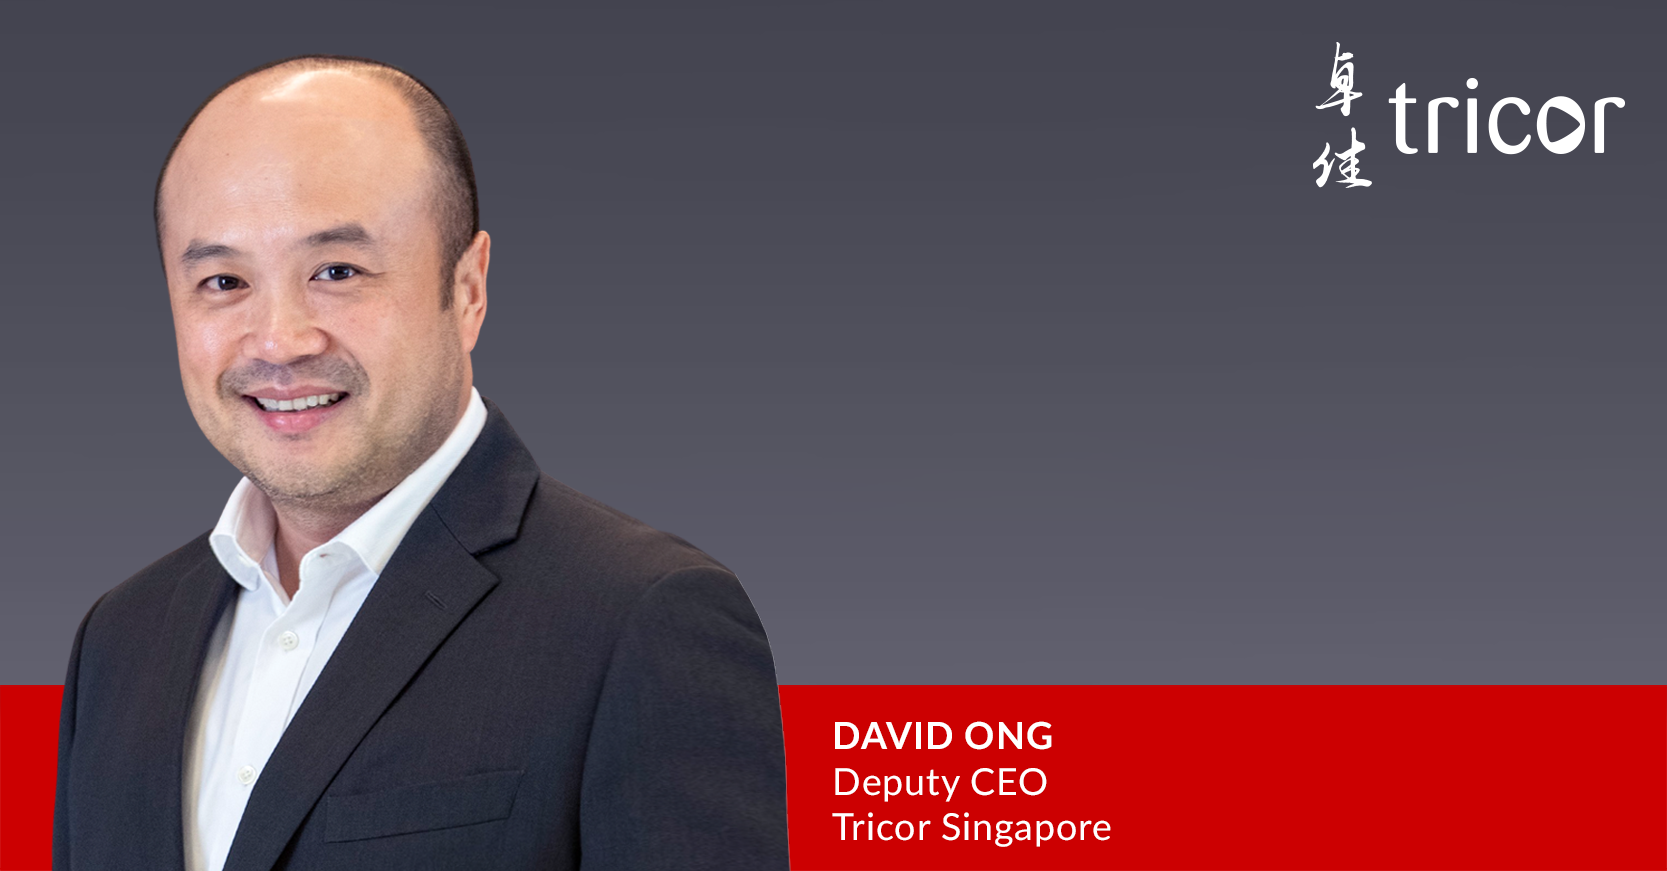 Tricor Group Appoints David Ong as Deputy CEO of Singapore Operation